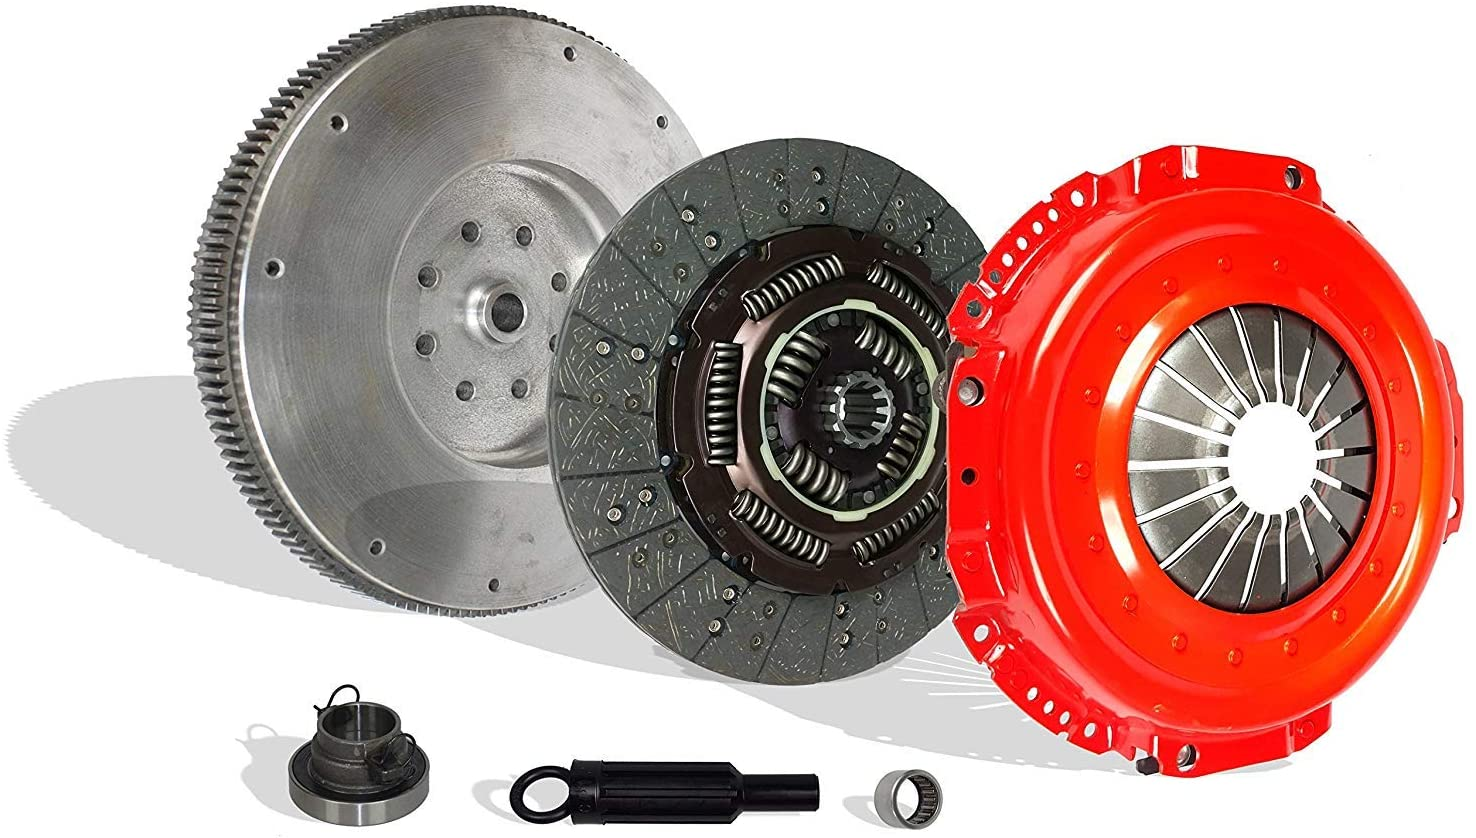 Clutch Kit And Flywheel Compatible With Ram 2500 3500 Laramie SLT ST Base Cab Pickup 1998-2004 5.9L l6 DIESEL OHV Turbo (CUMMINS TURBO DIESEL; 5-SPEED; Stage 2; 05-092RFW)